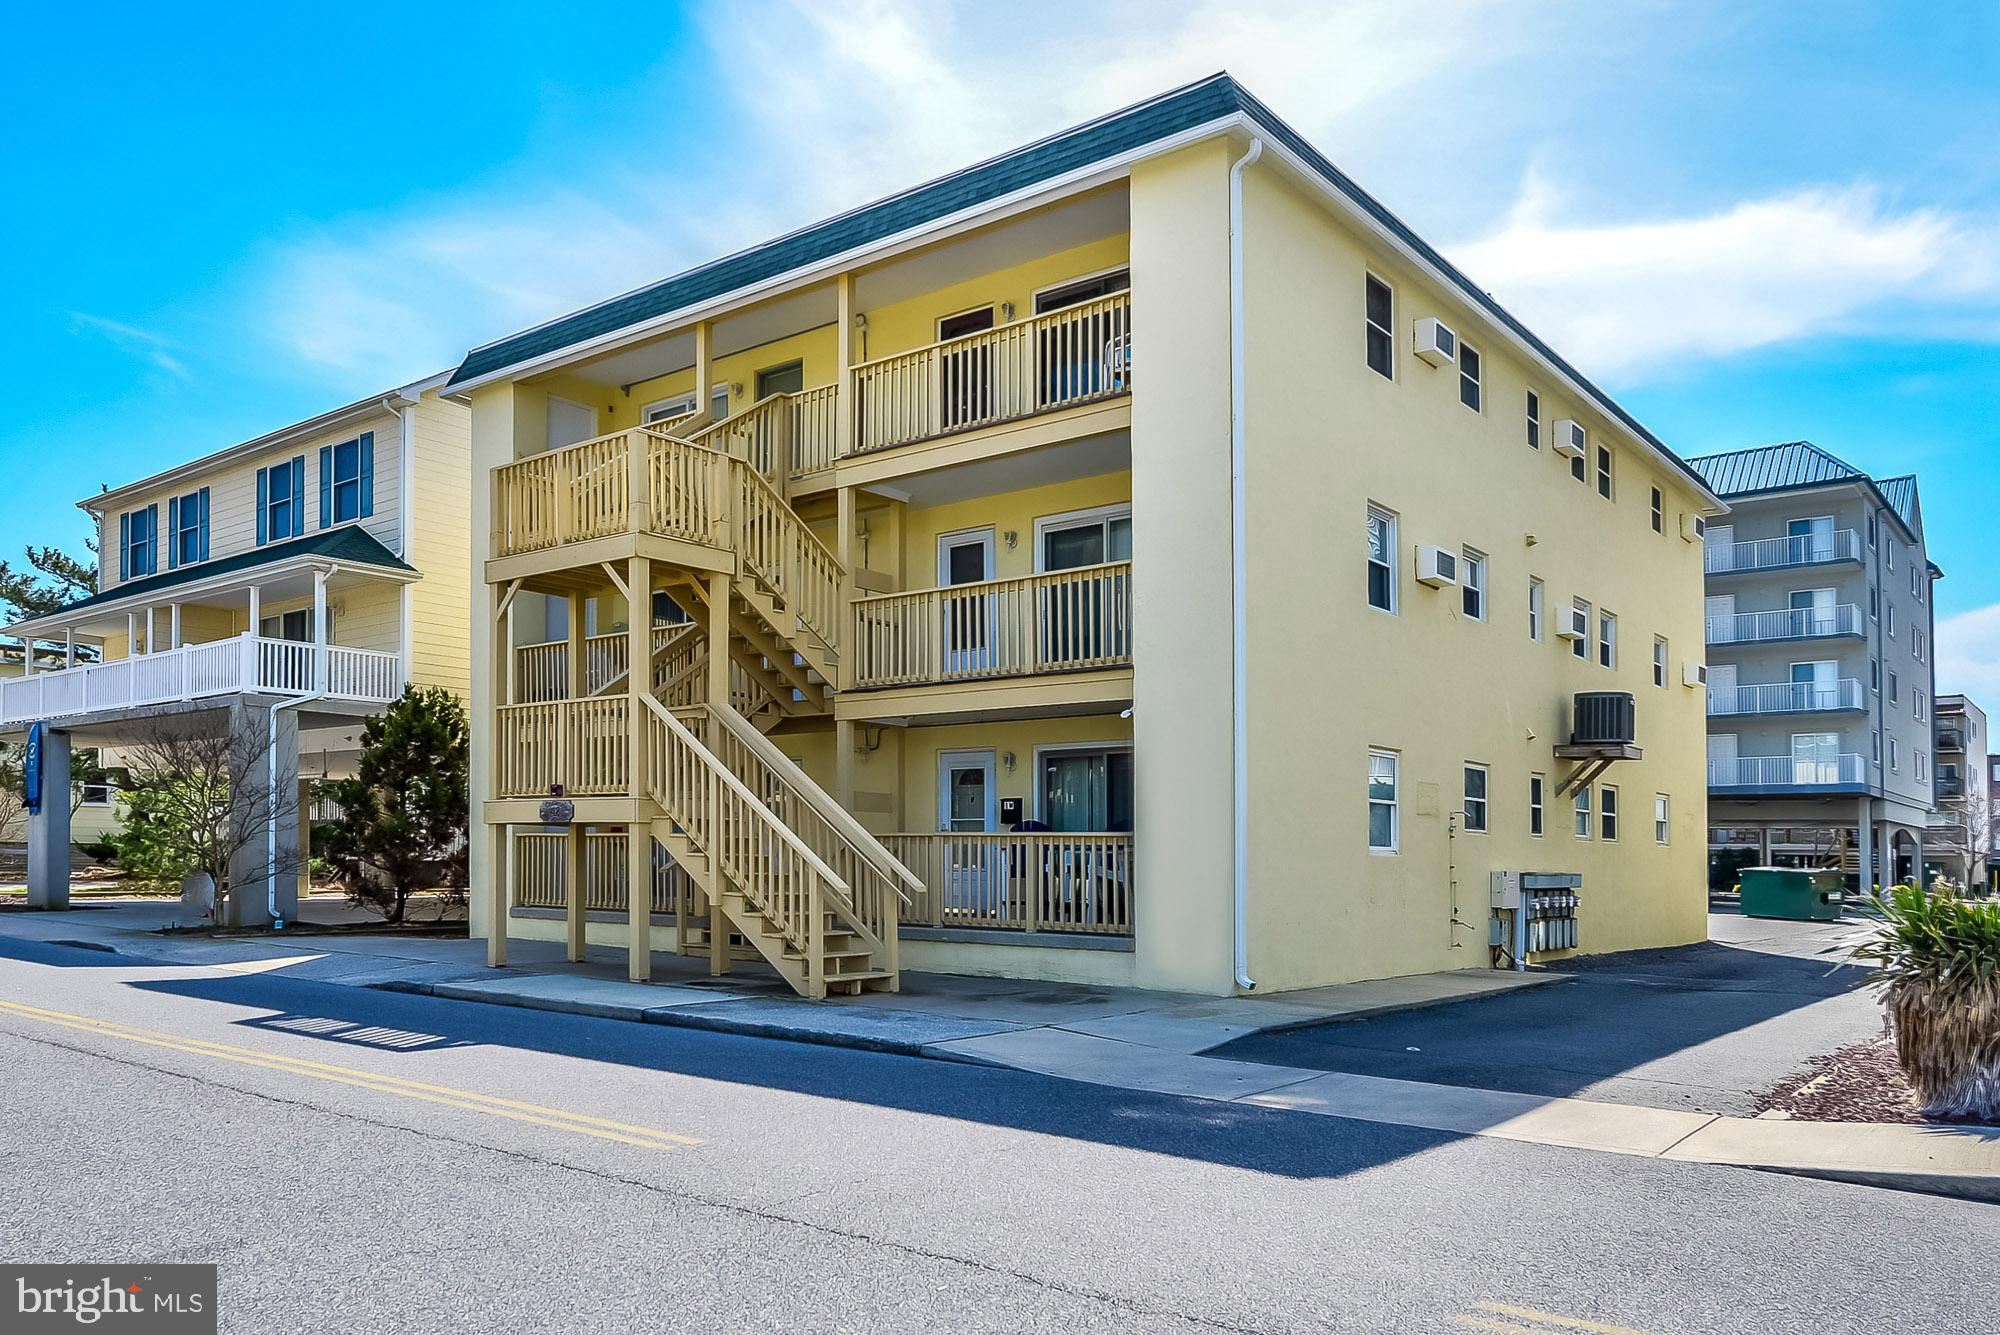 Great opportunity to own a convenient first floor 3 bedroom 2 bath Oceanside Condo.   Unit features ceramic tile floors, separate utility room w/full size washer dryer, central heat/air (new in last 2 years), outside storage closet, 2 car parking, LOW condo fees (2300 annually) & nice balcony.  Excellent rental income averaging $24K last 3 years.   Great location 42nd street oceanside.  Walk to numerous restaurants, convention center & close to Amusement Park and Boardwalk.